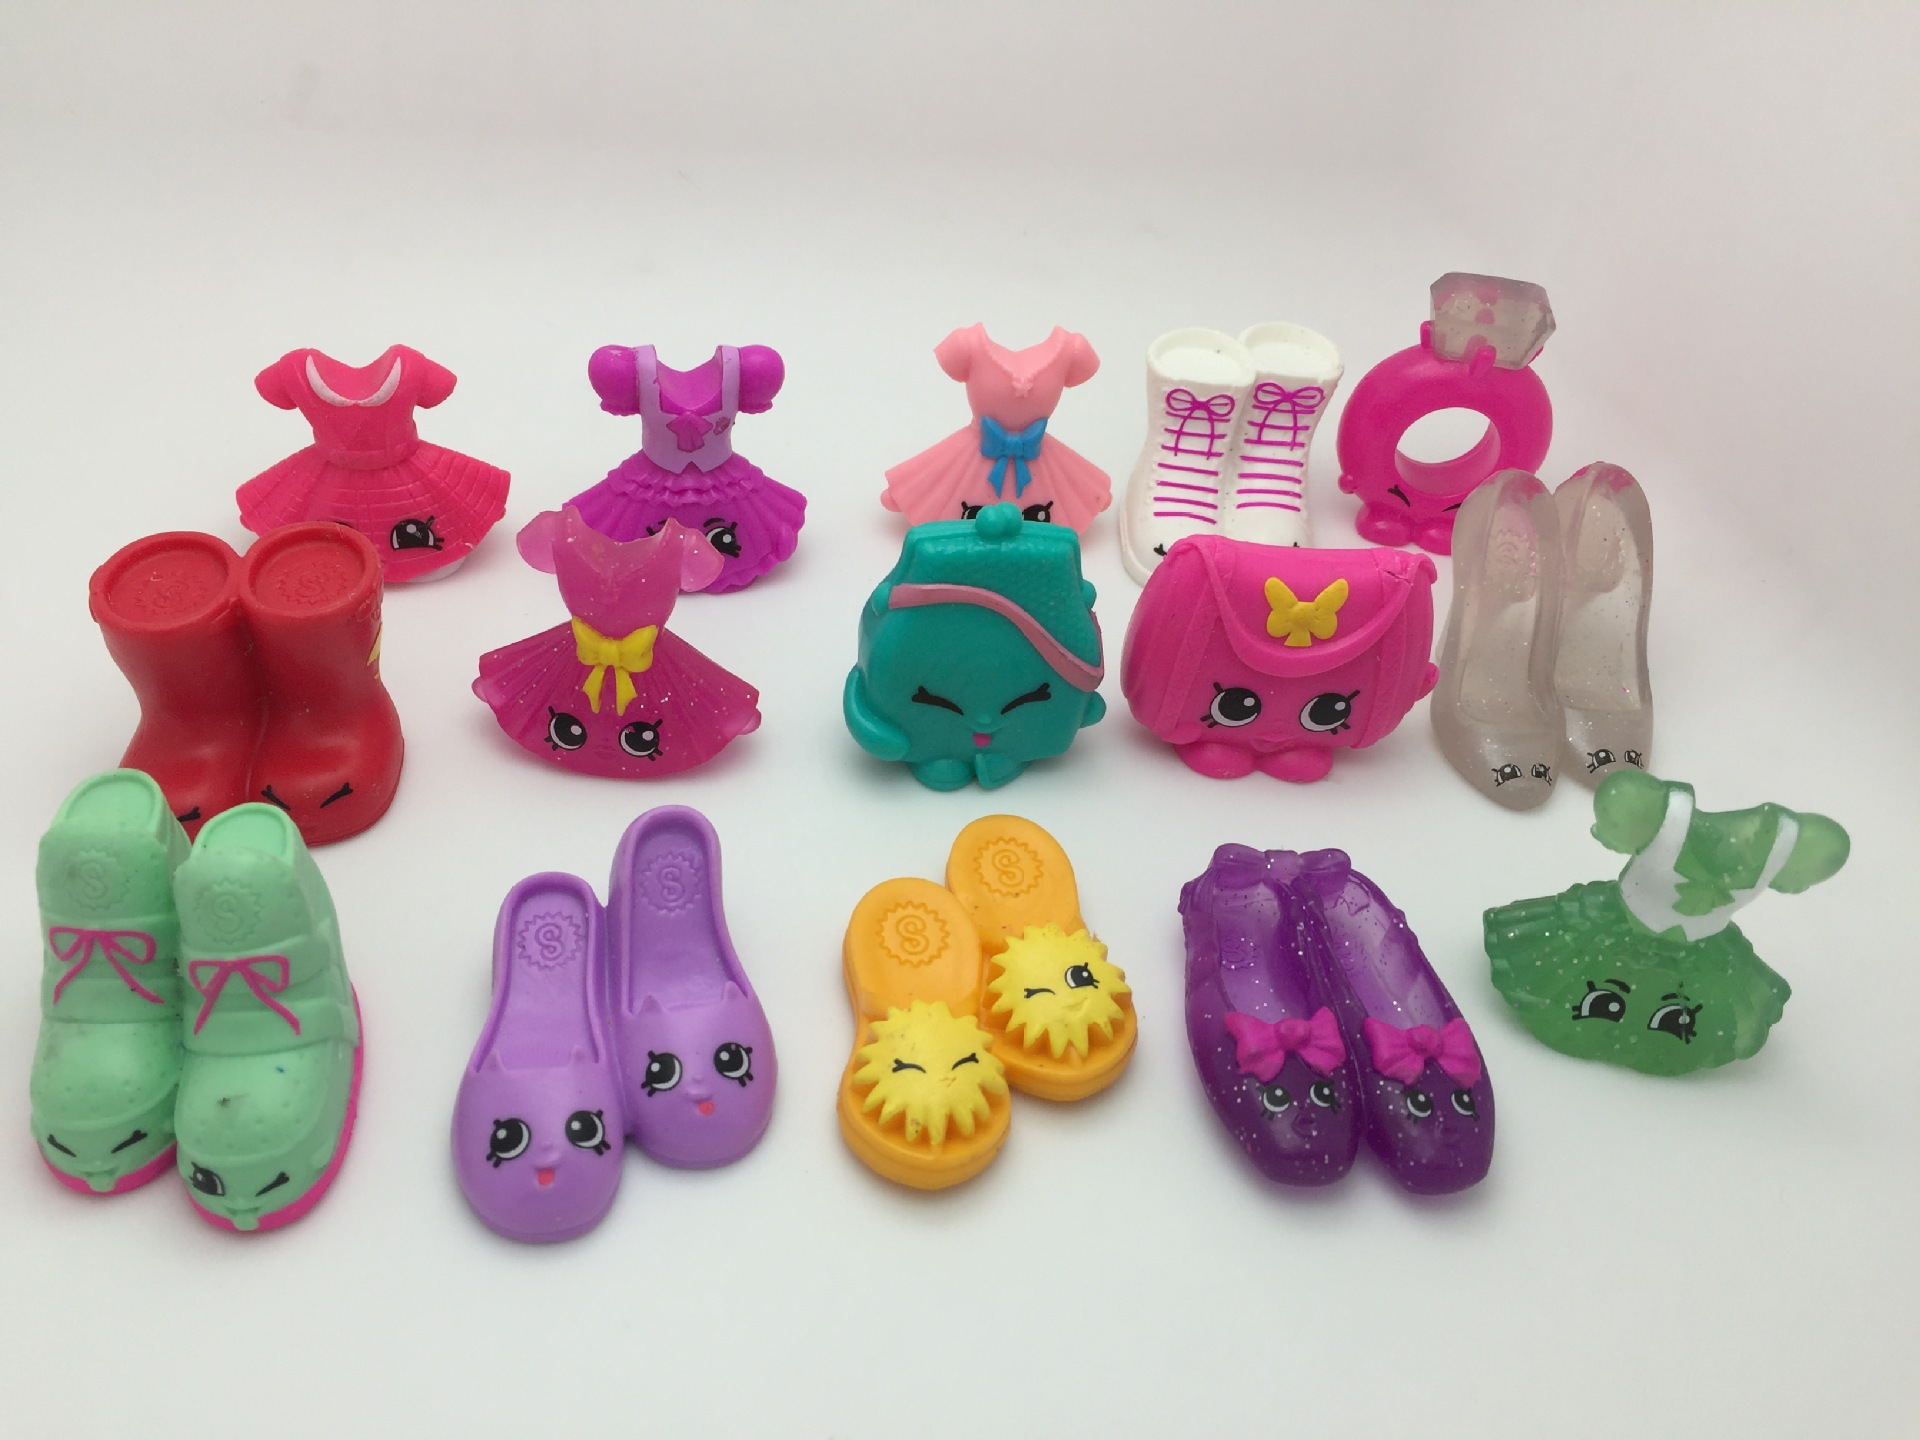 Original Cute Fruit Basket Shoes Dress Ring Bags Figure Toy Girl